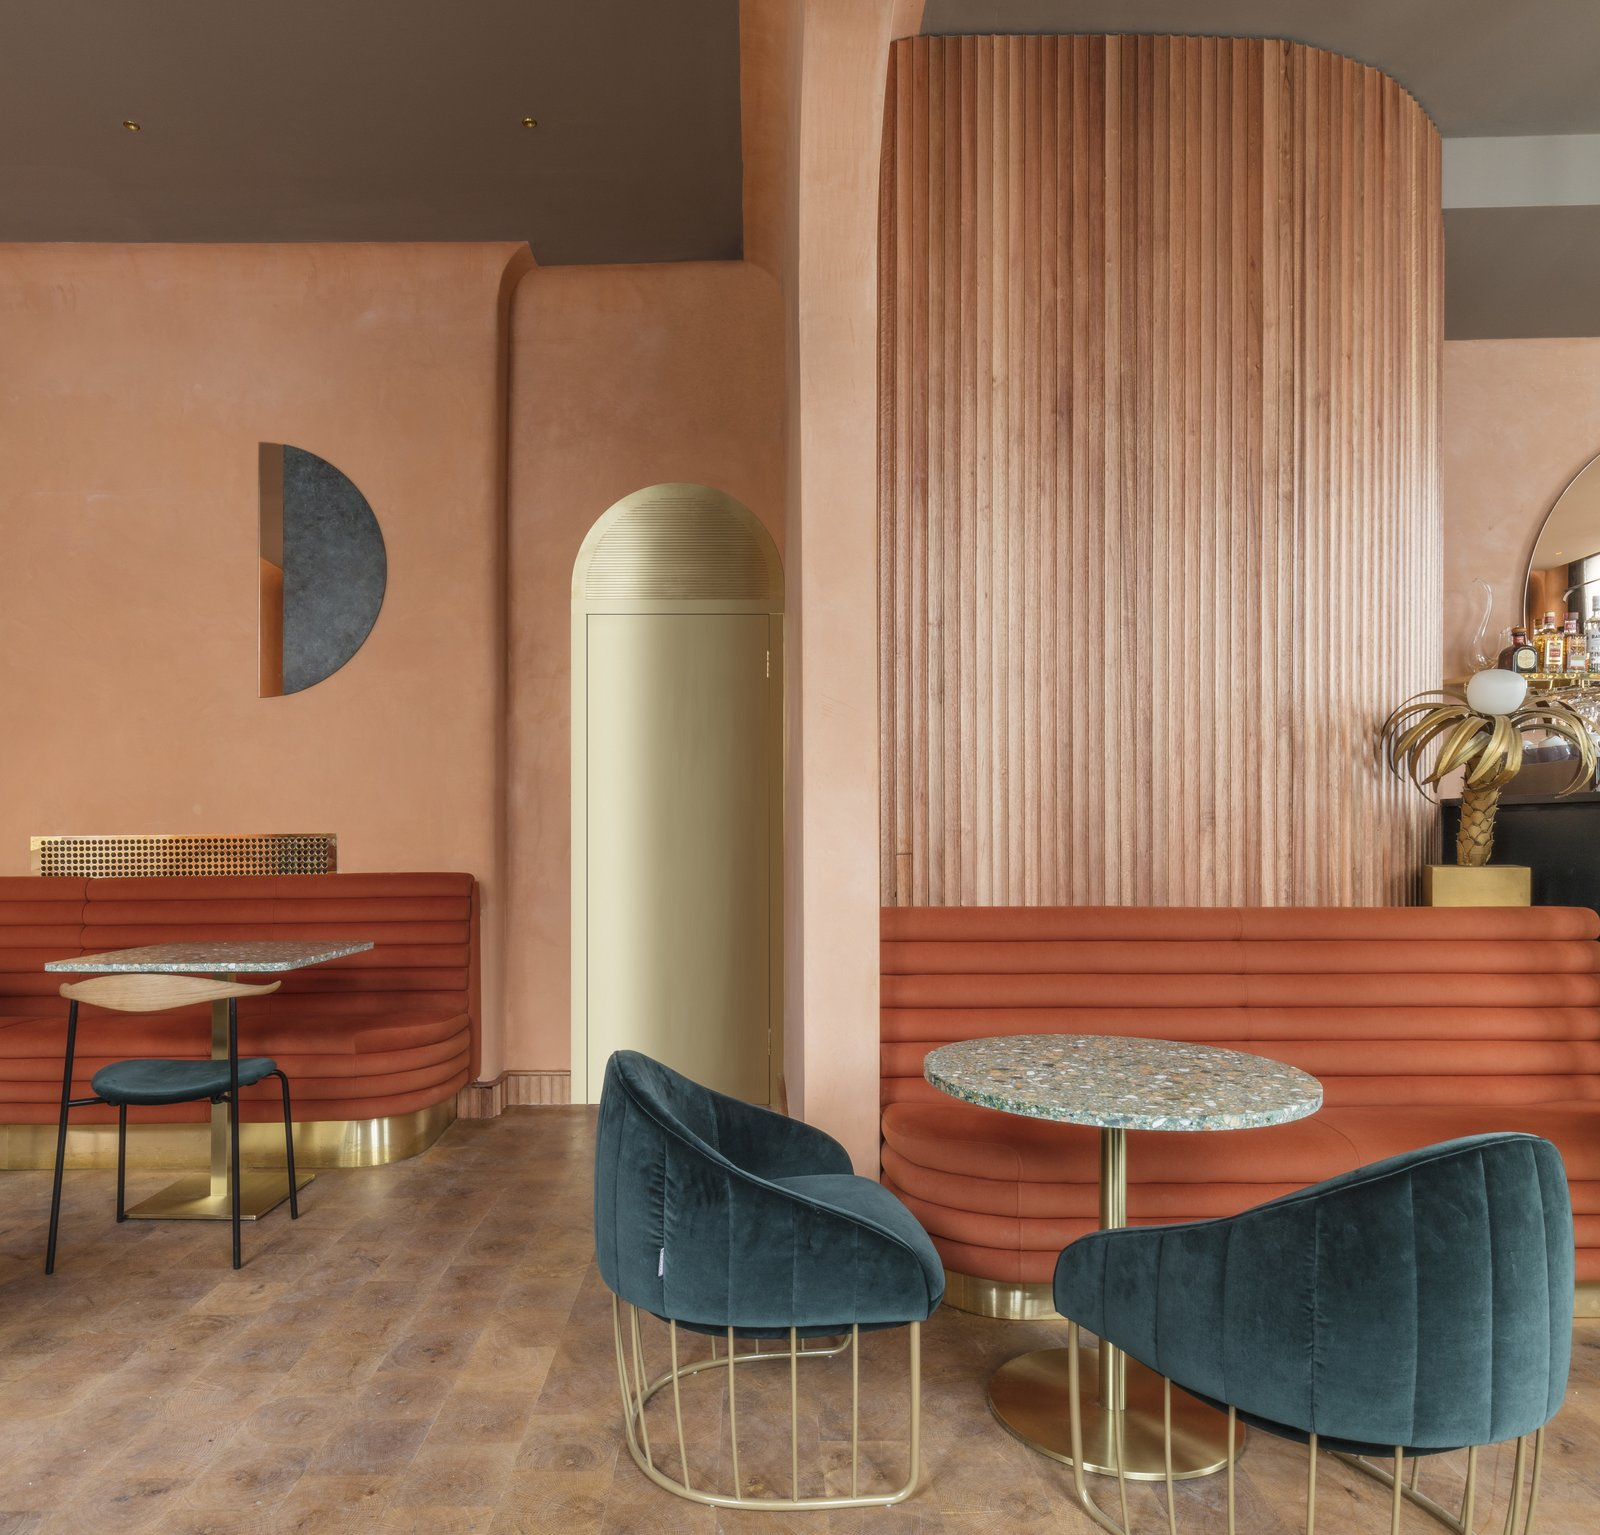 A circular motif echos throughout the design of the warm and modern space.